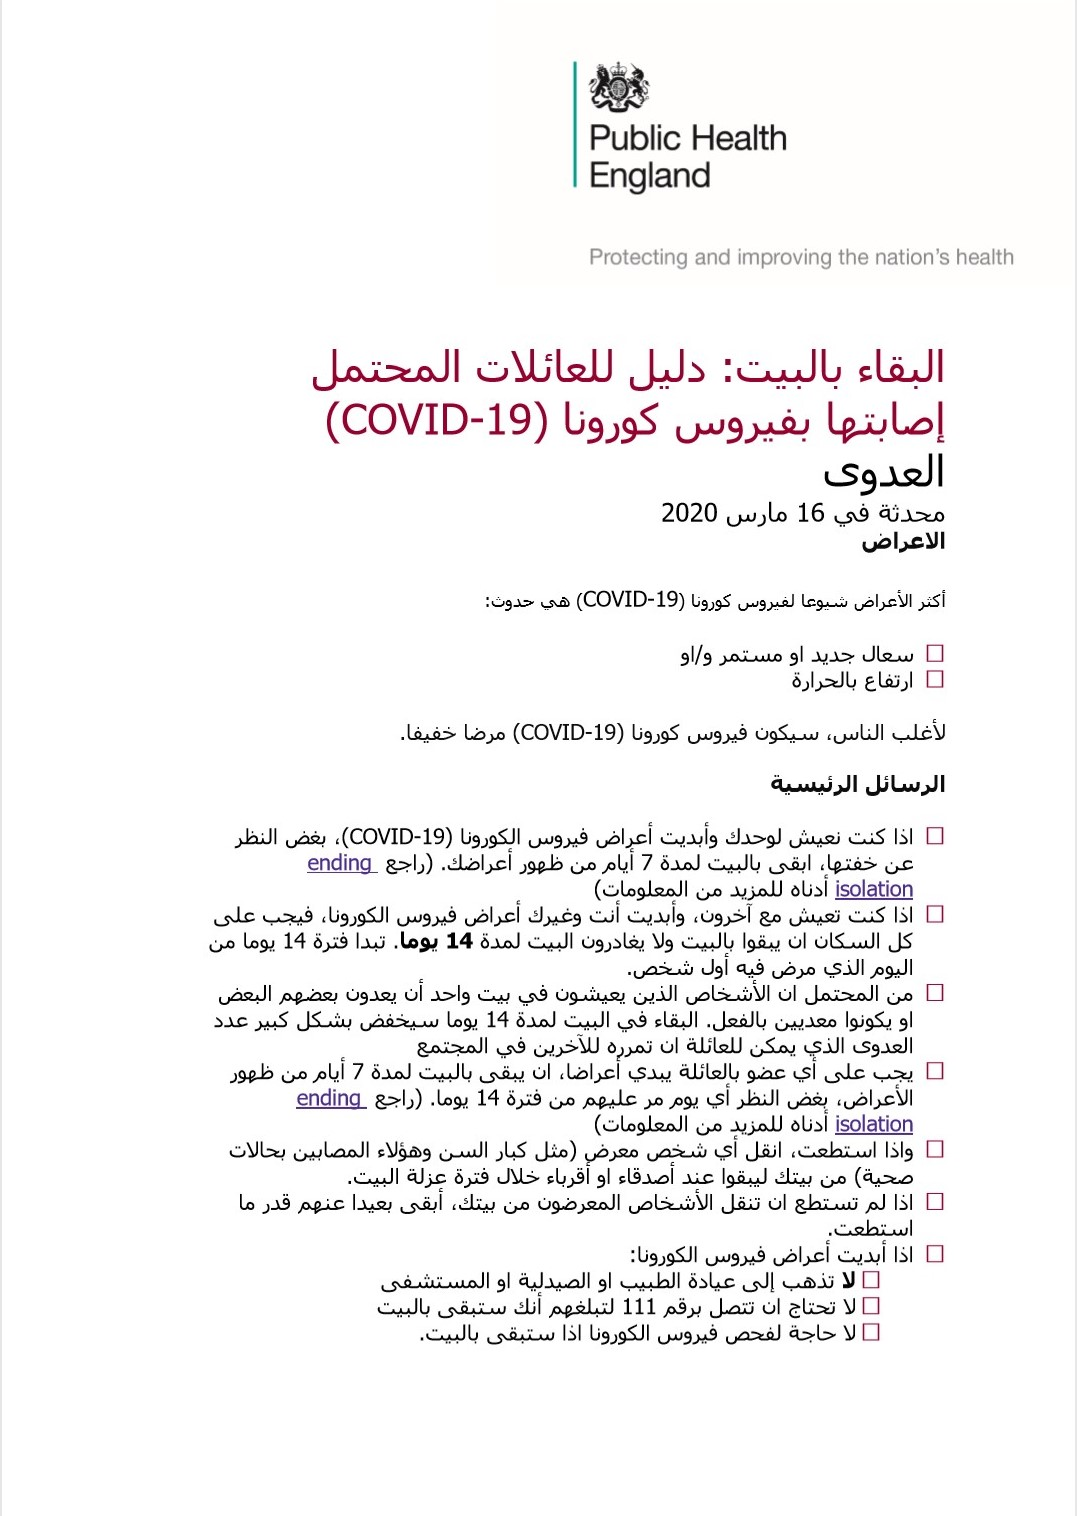 Arabic language guidance from the UK Government, for households with possible coronavirus.